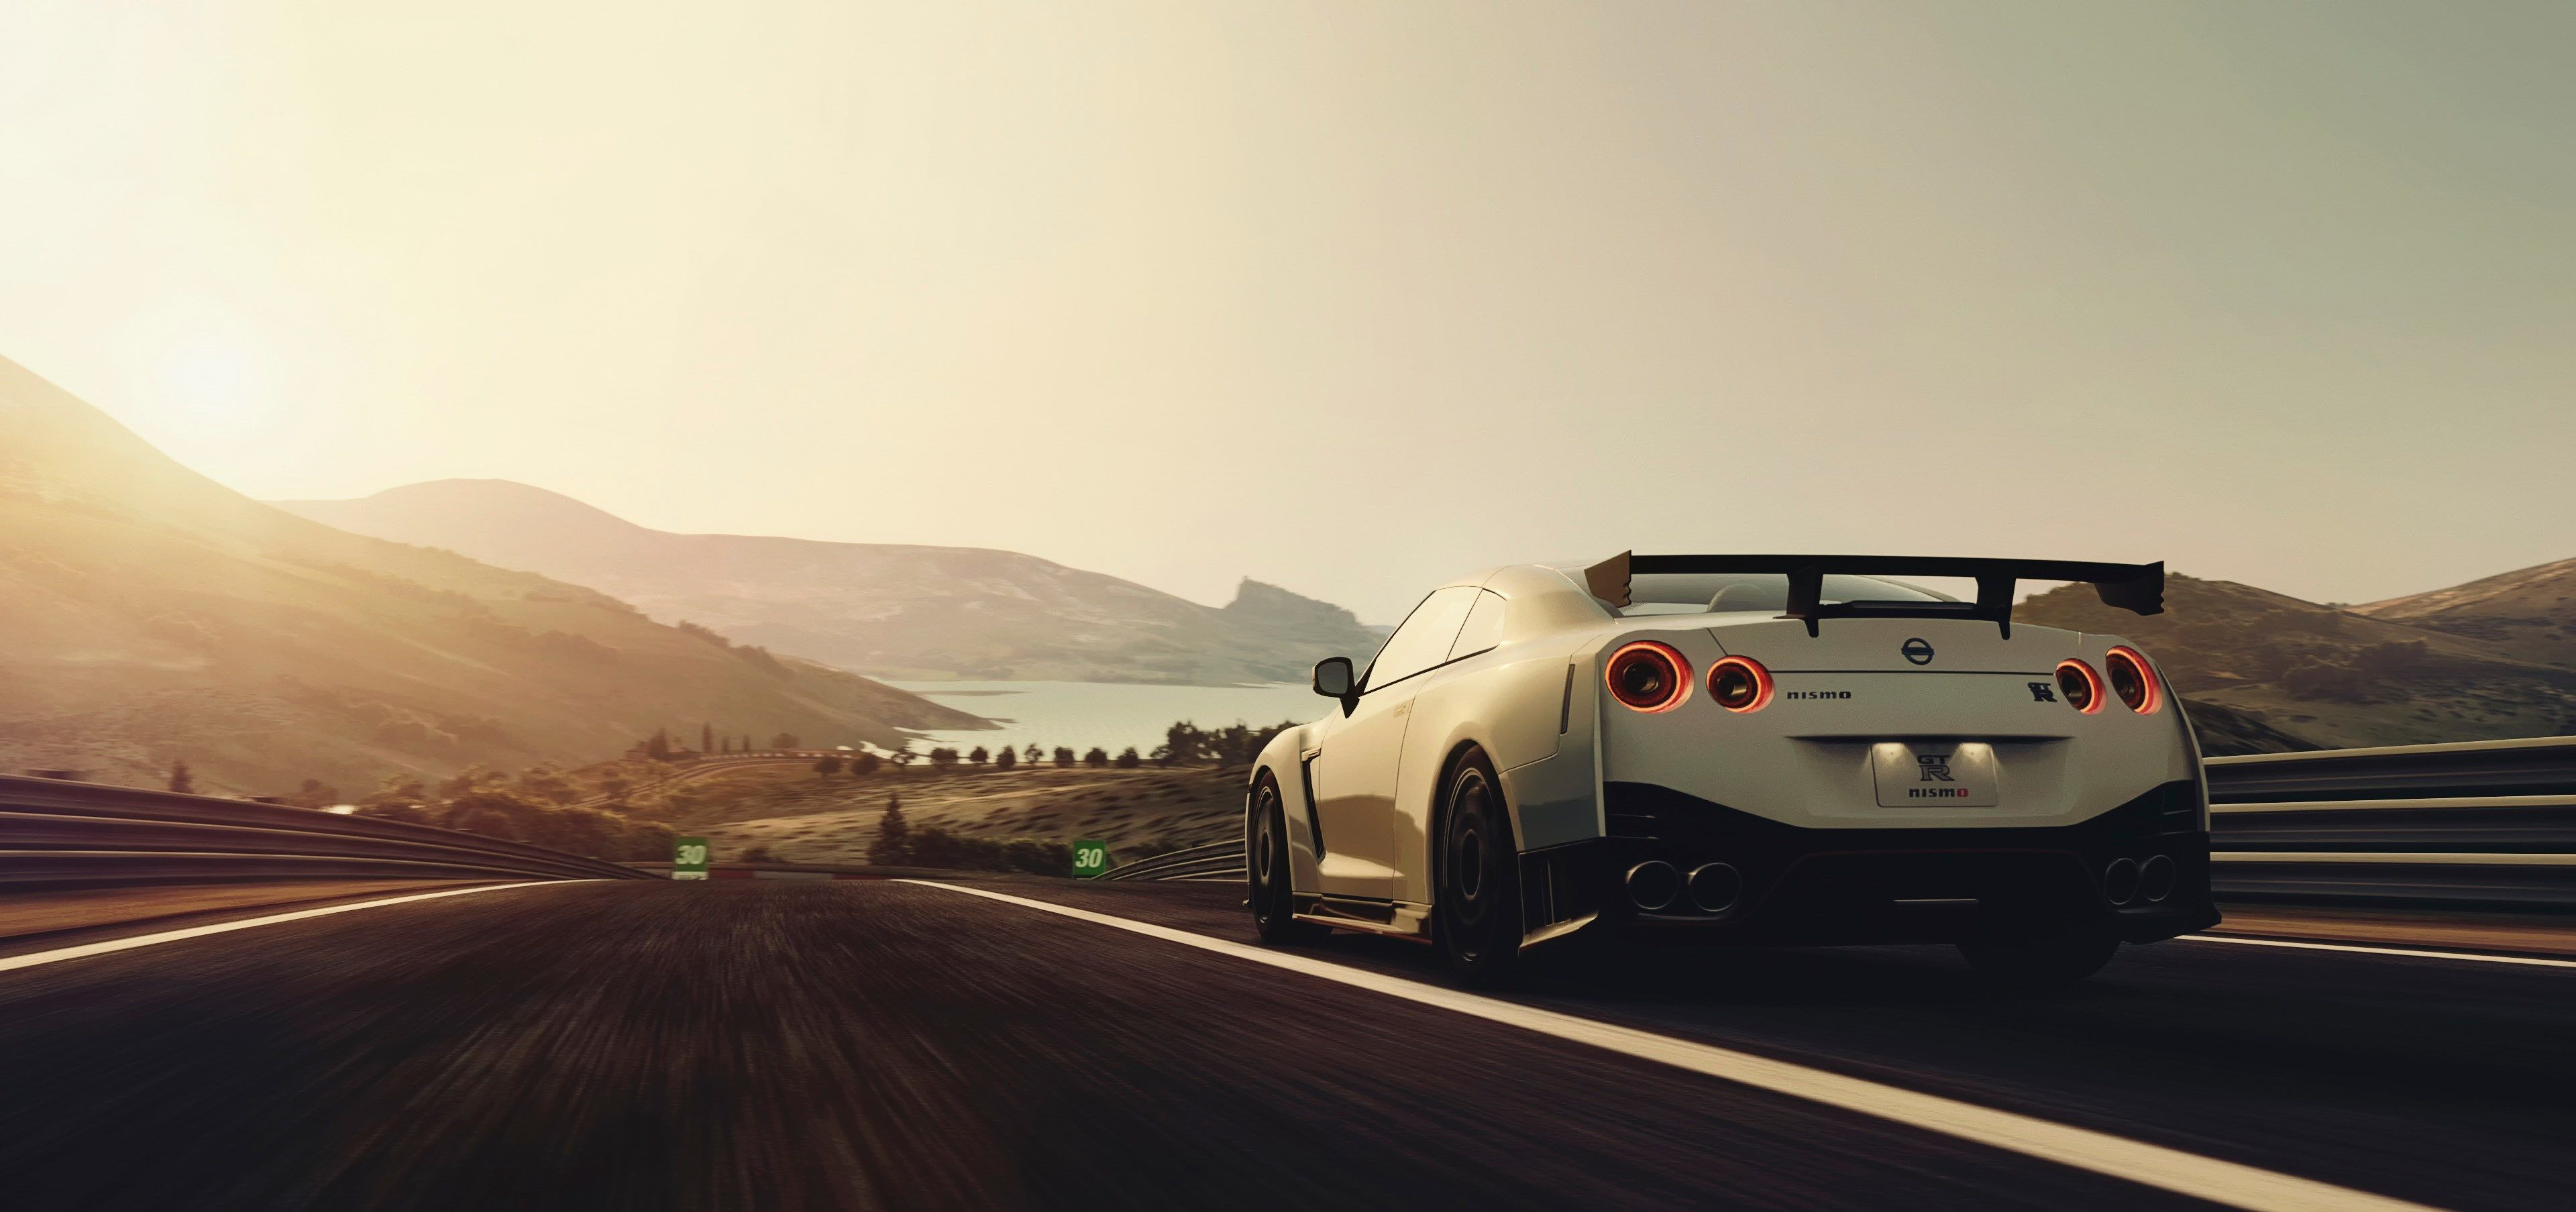 2017 03 12 Awesome Nissan Gt R Nismo Backround 1527429 Carros Animais Selvagens Sobrenatural